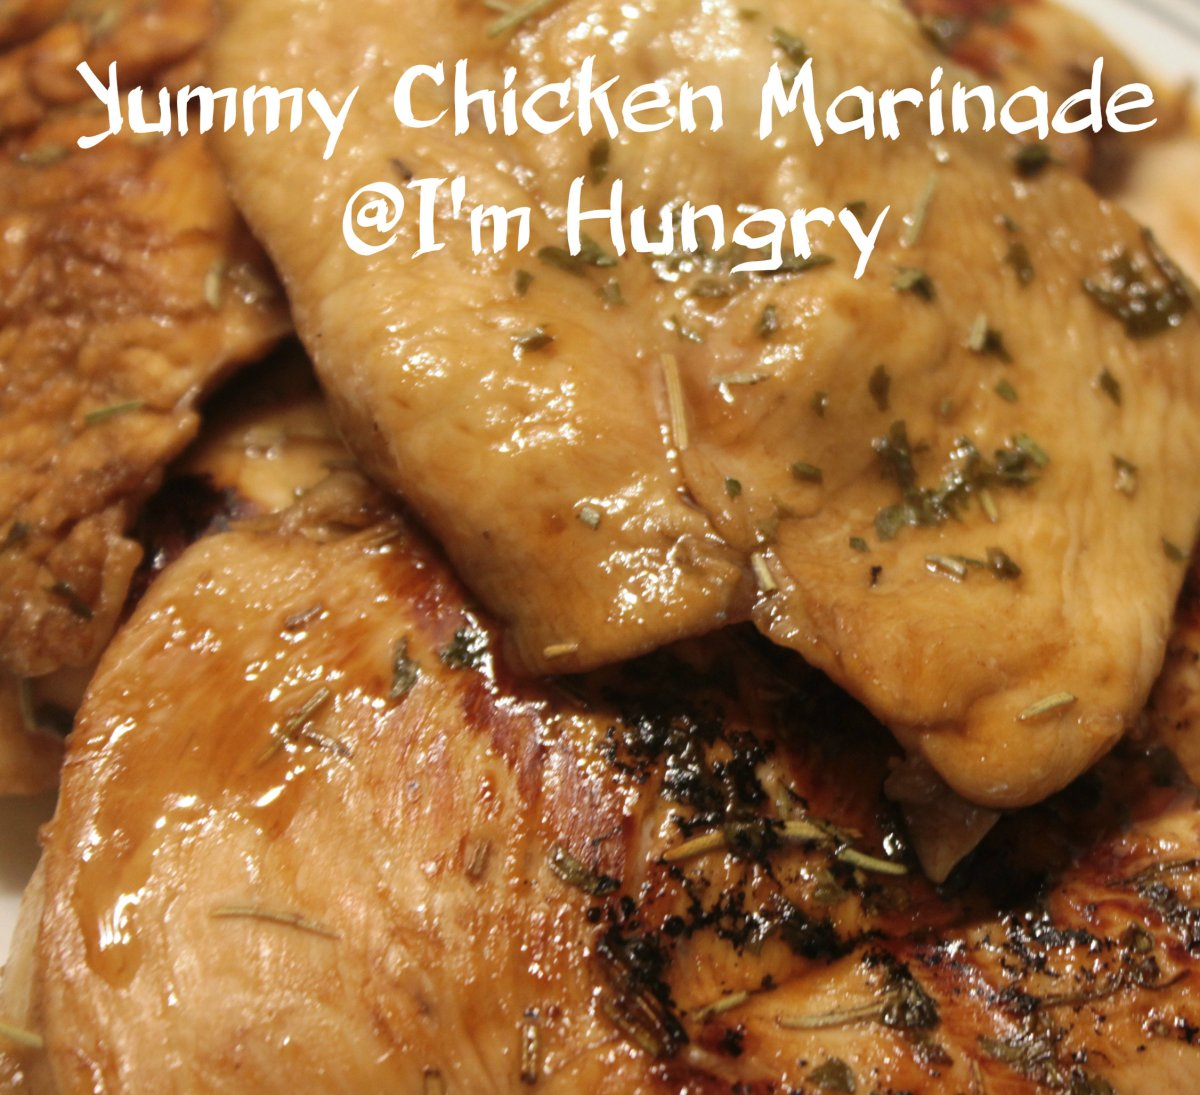 Yummy Chicken Marinade